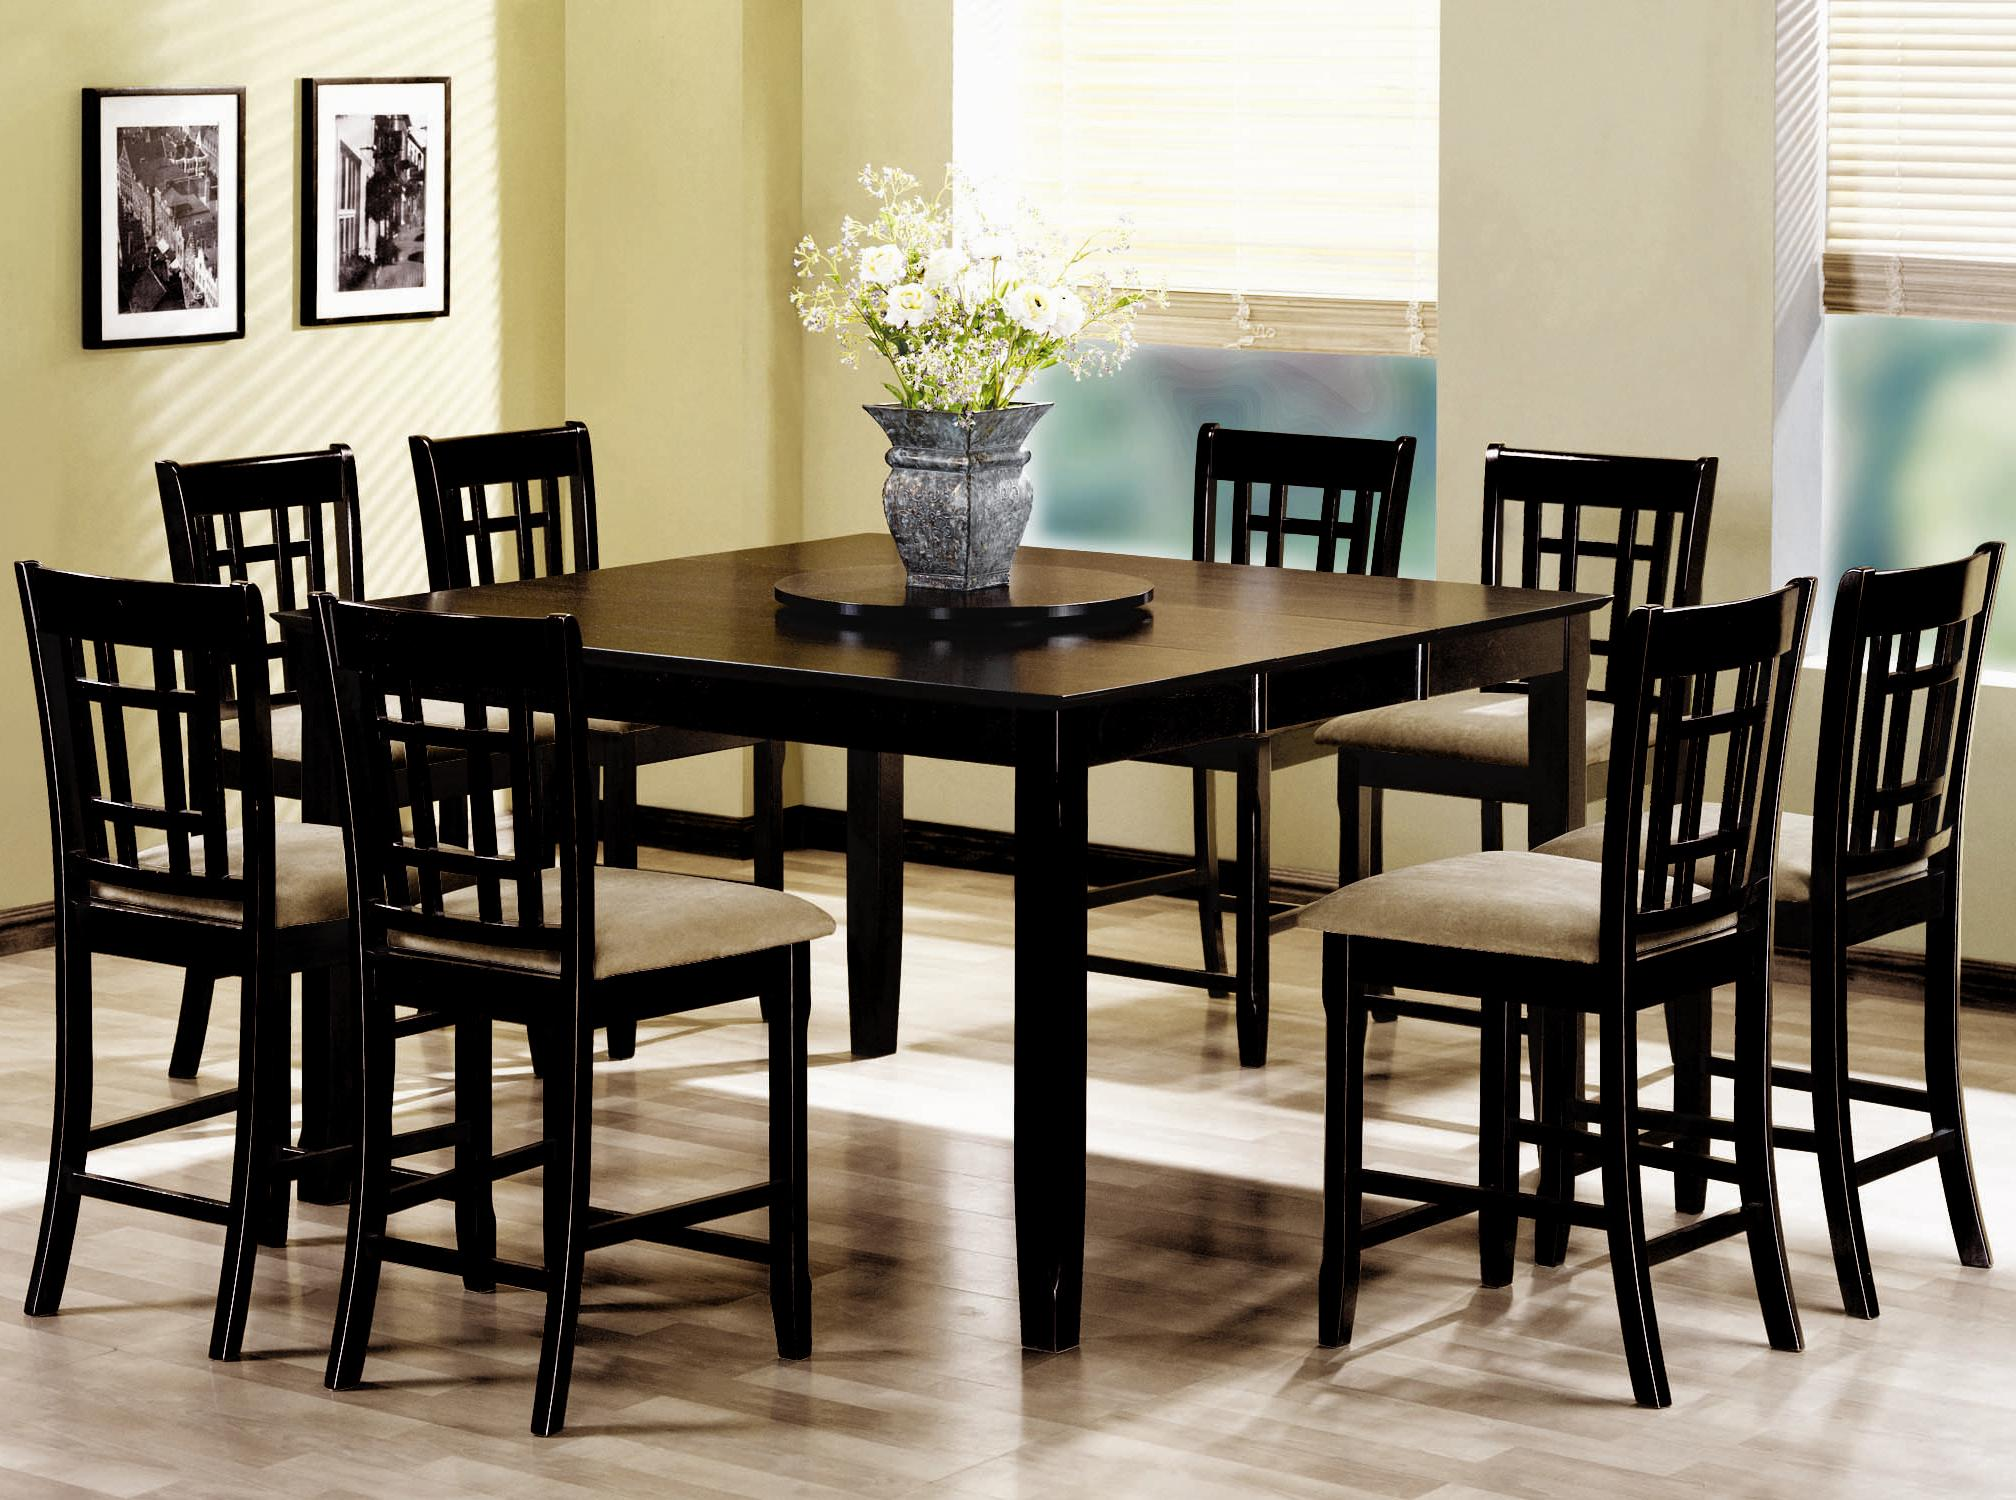 Counter Height Dinette Sets HomesFeed : Dinette Set With Black Eight Chairs And Rectangular Table from homesfeed.com size 2016 x 1500 jpeg 326kB